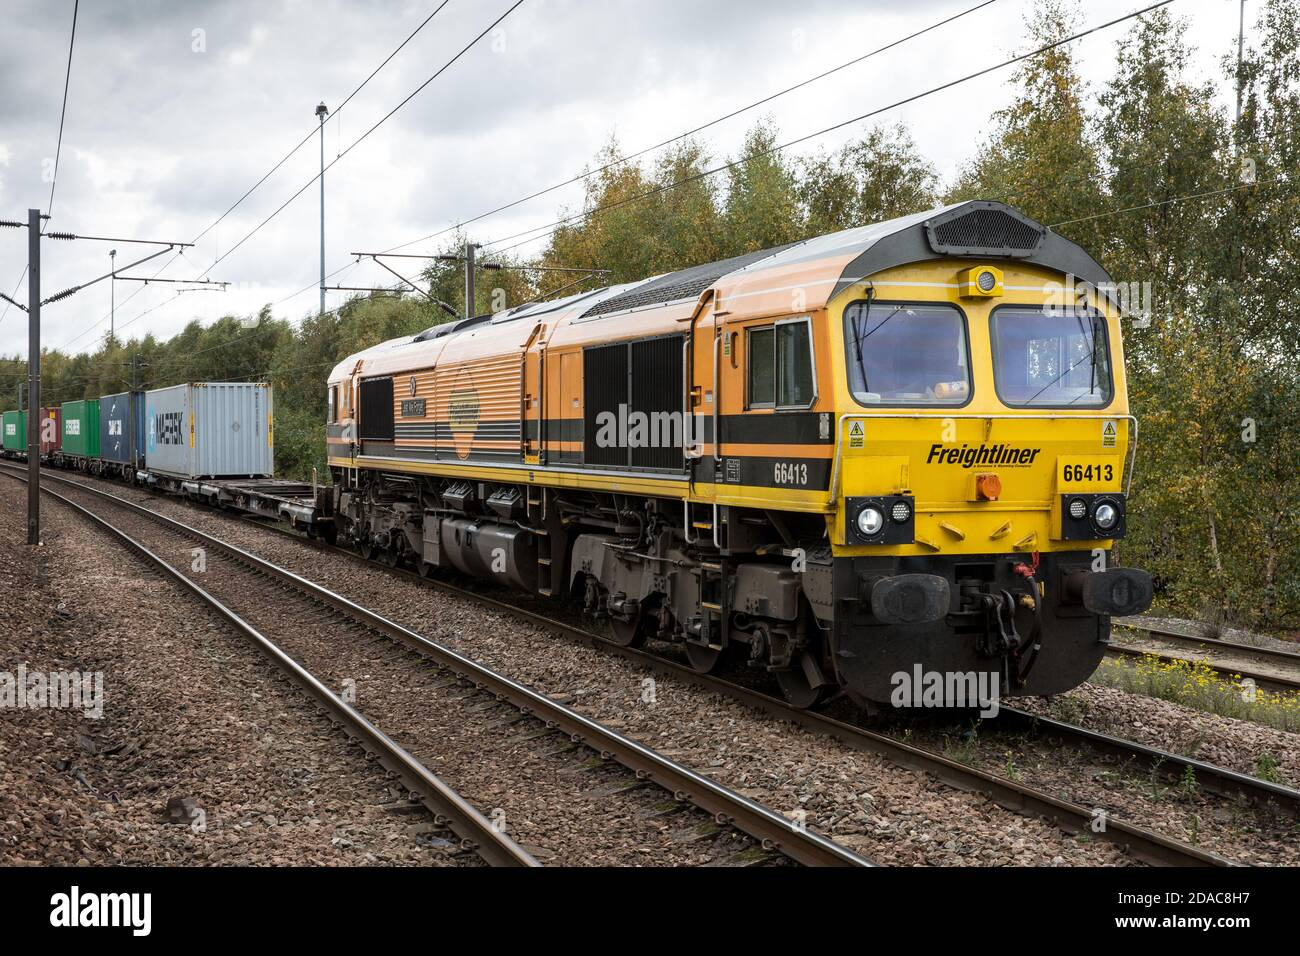 DONCASTER, UK - OCTOBER 15, 2020. A Freightliner Class 66 locomotive and Intermodal Shipping container freight train moving cargo boxes to UK ports Stock Photo